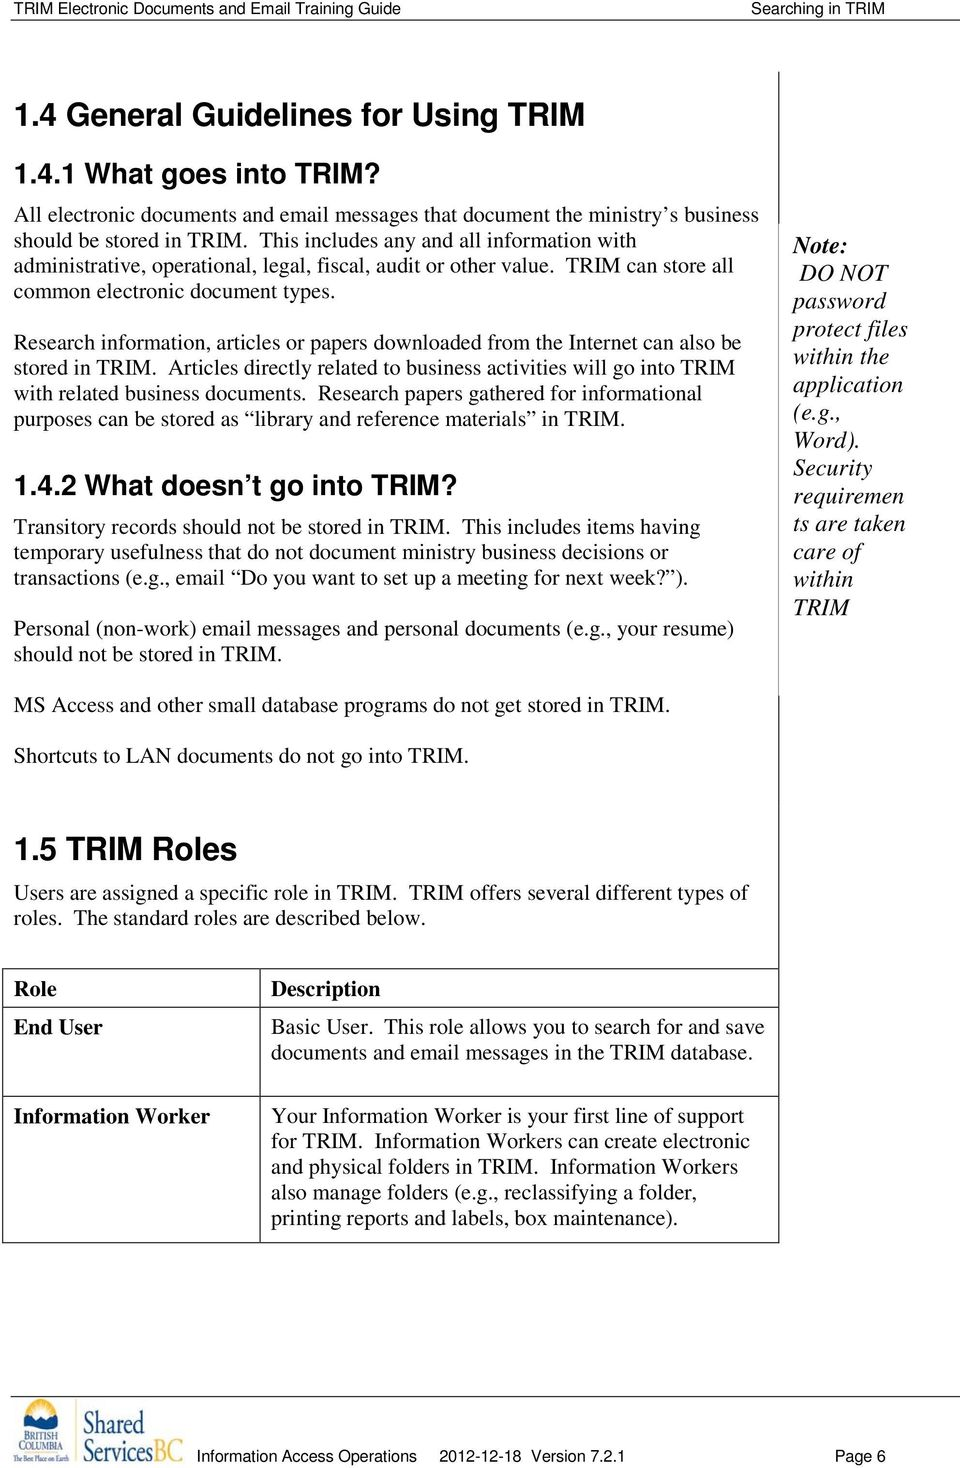 trim electronic documents and training guide pdf rh docplayer net